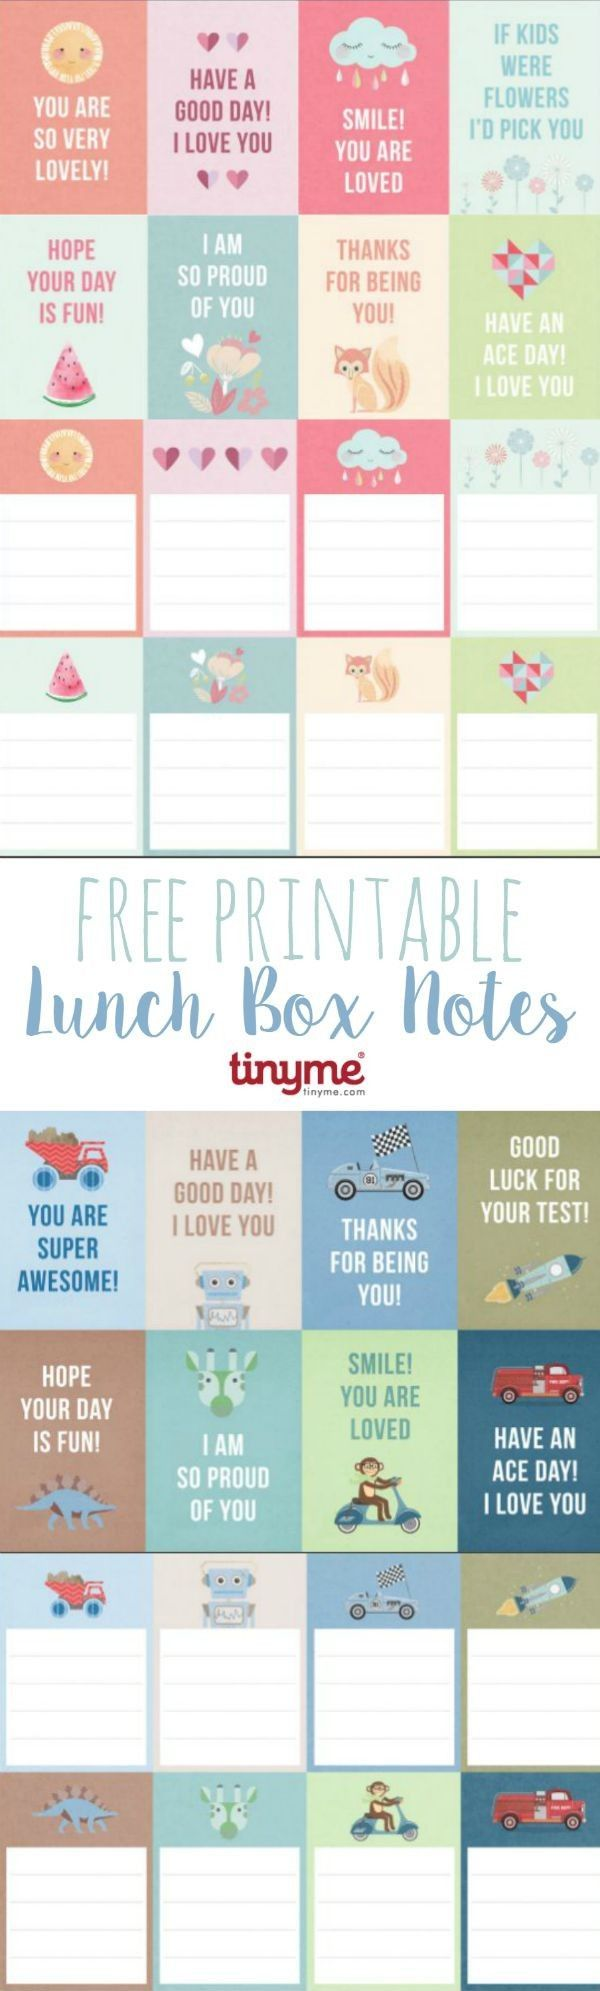 free printable lunch box notes - Free Kids Printables